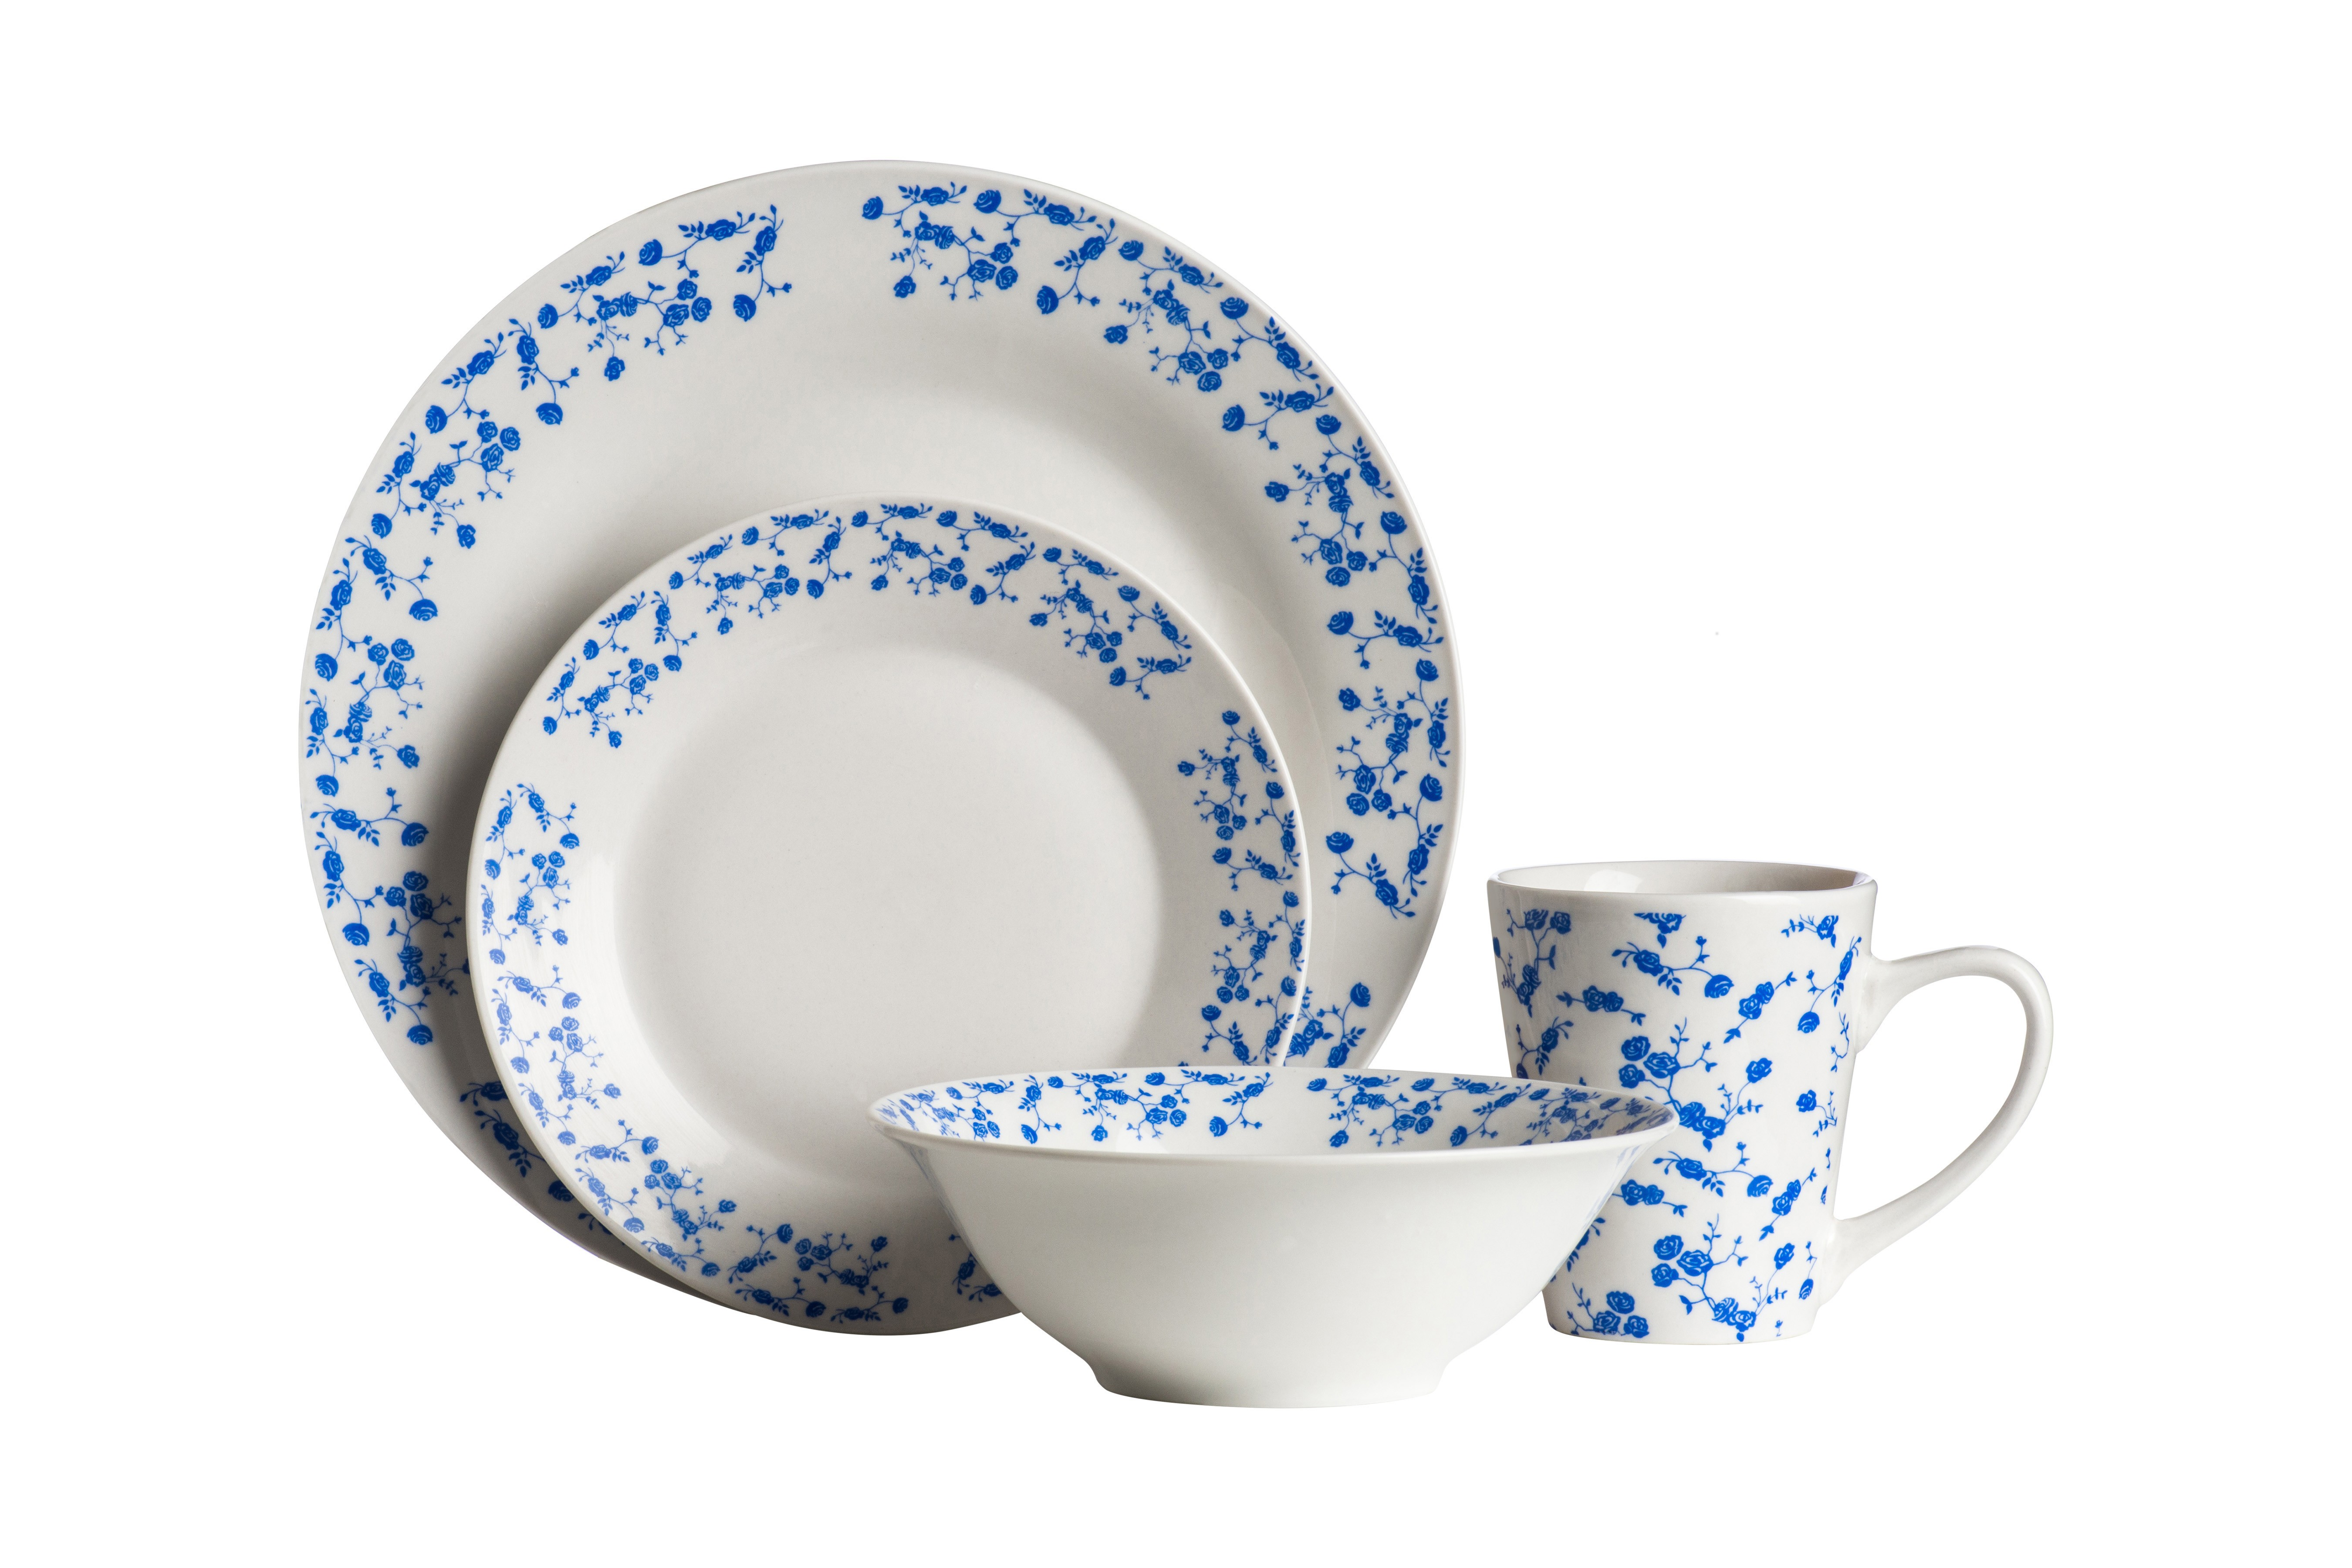 Prime Furnishing 16pc Blue Rose Flower Porcelain Dinner Set